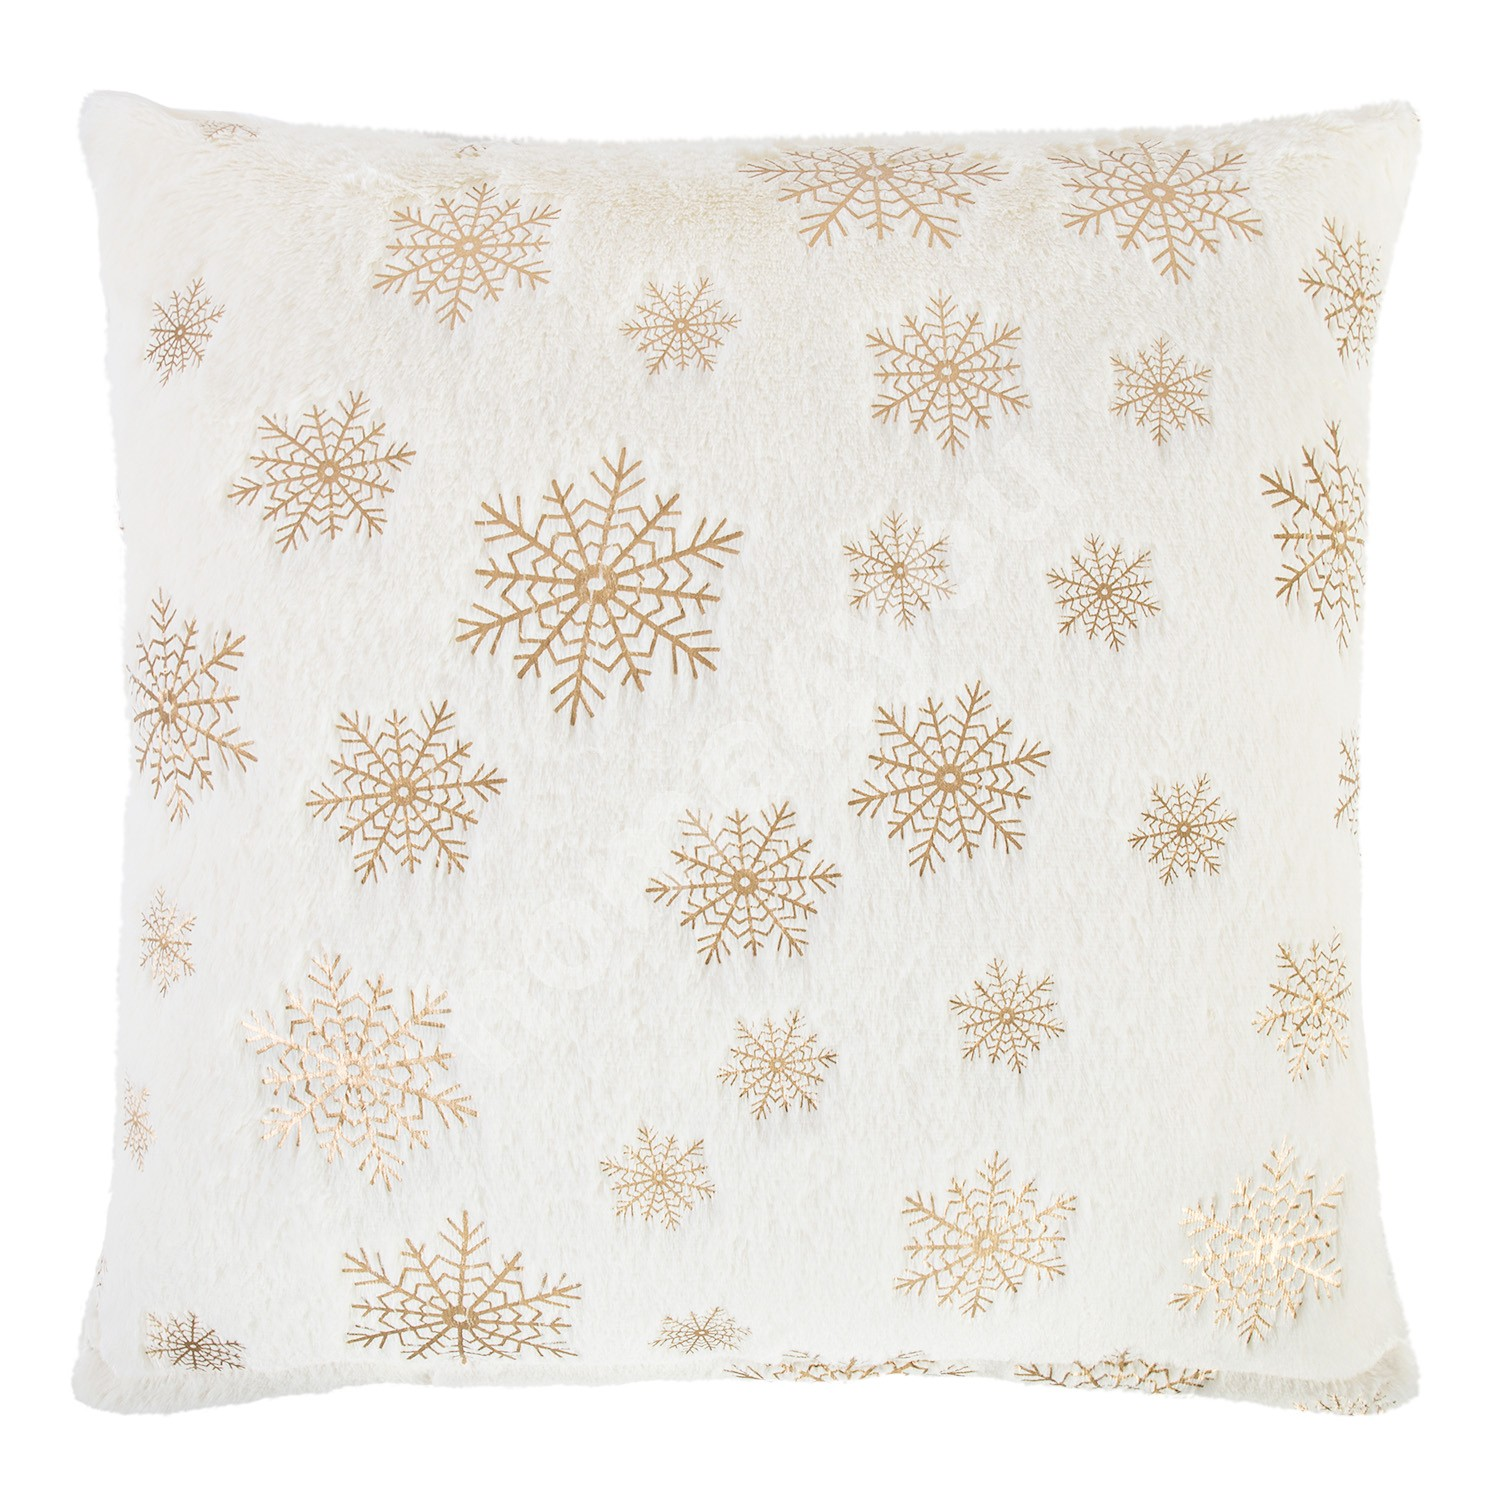 Pillow SOFT WINTER 50x50cm, snowflakes, 100% polyester, fabric-137